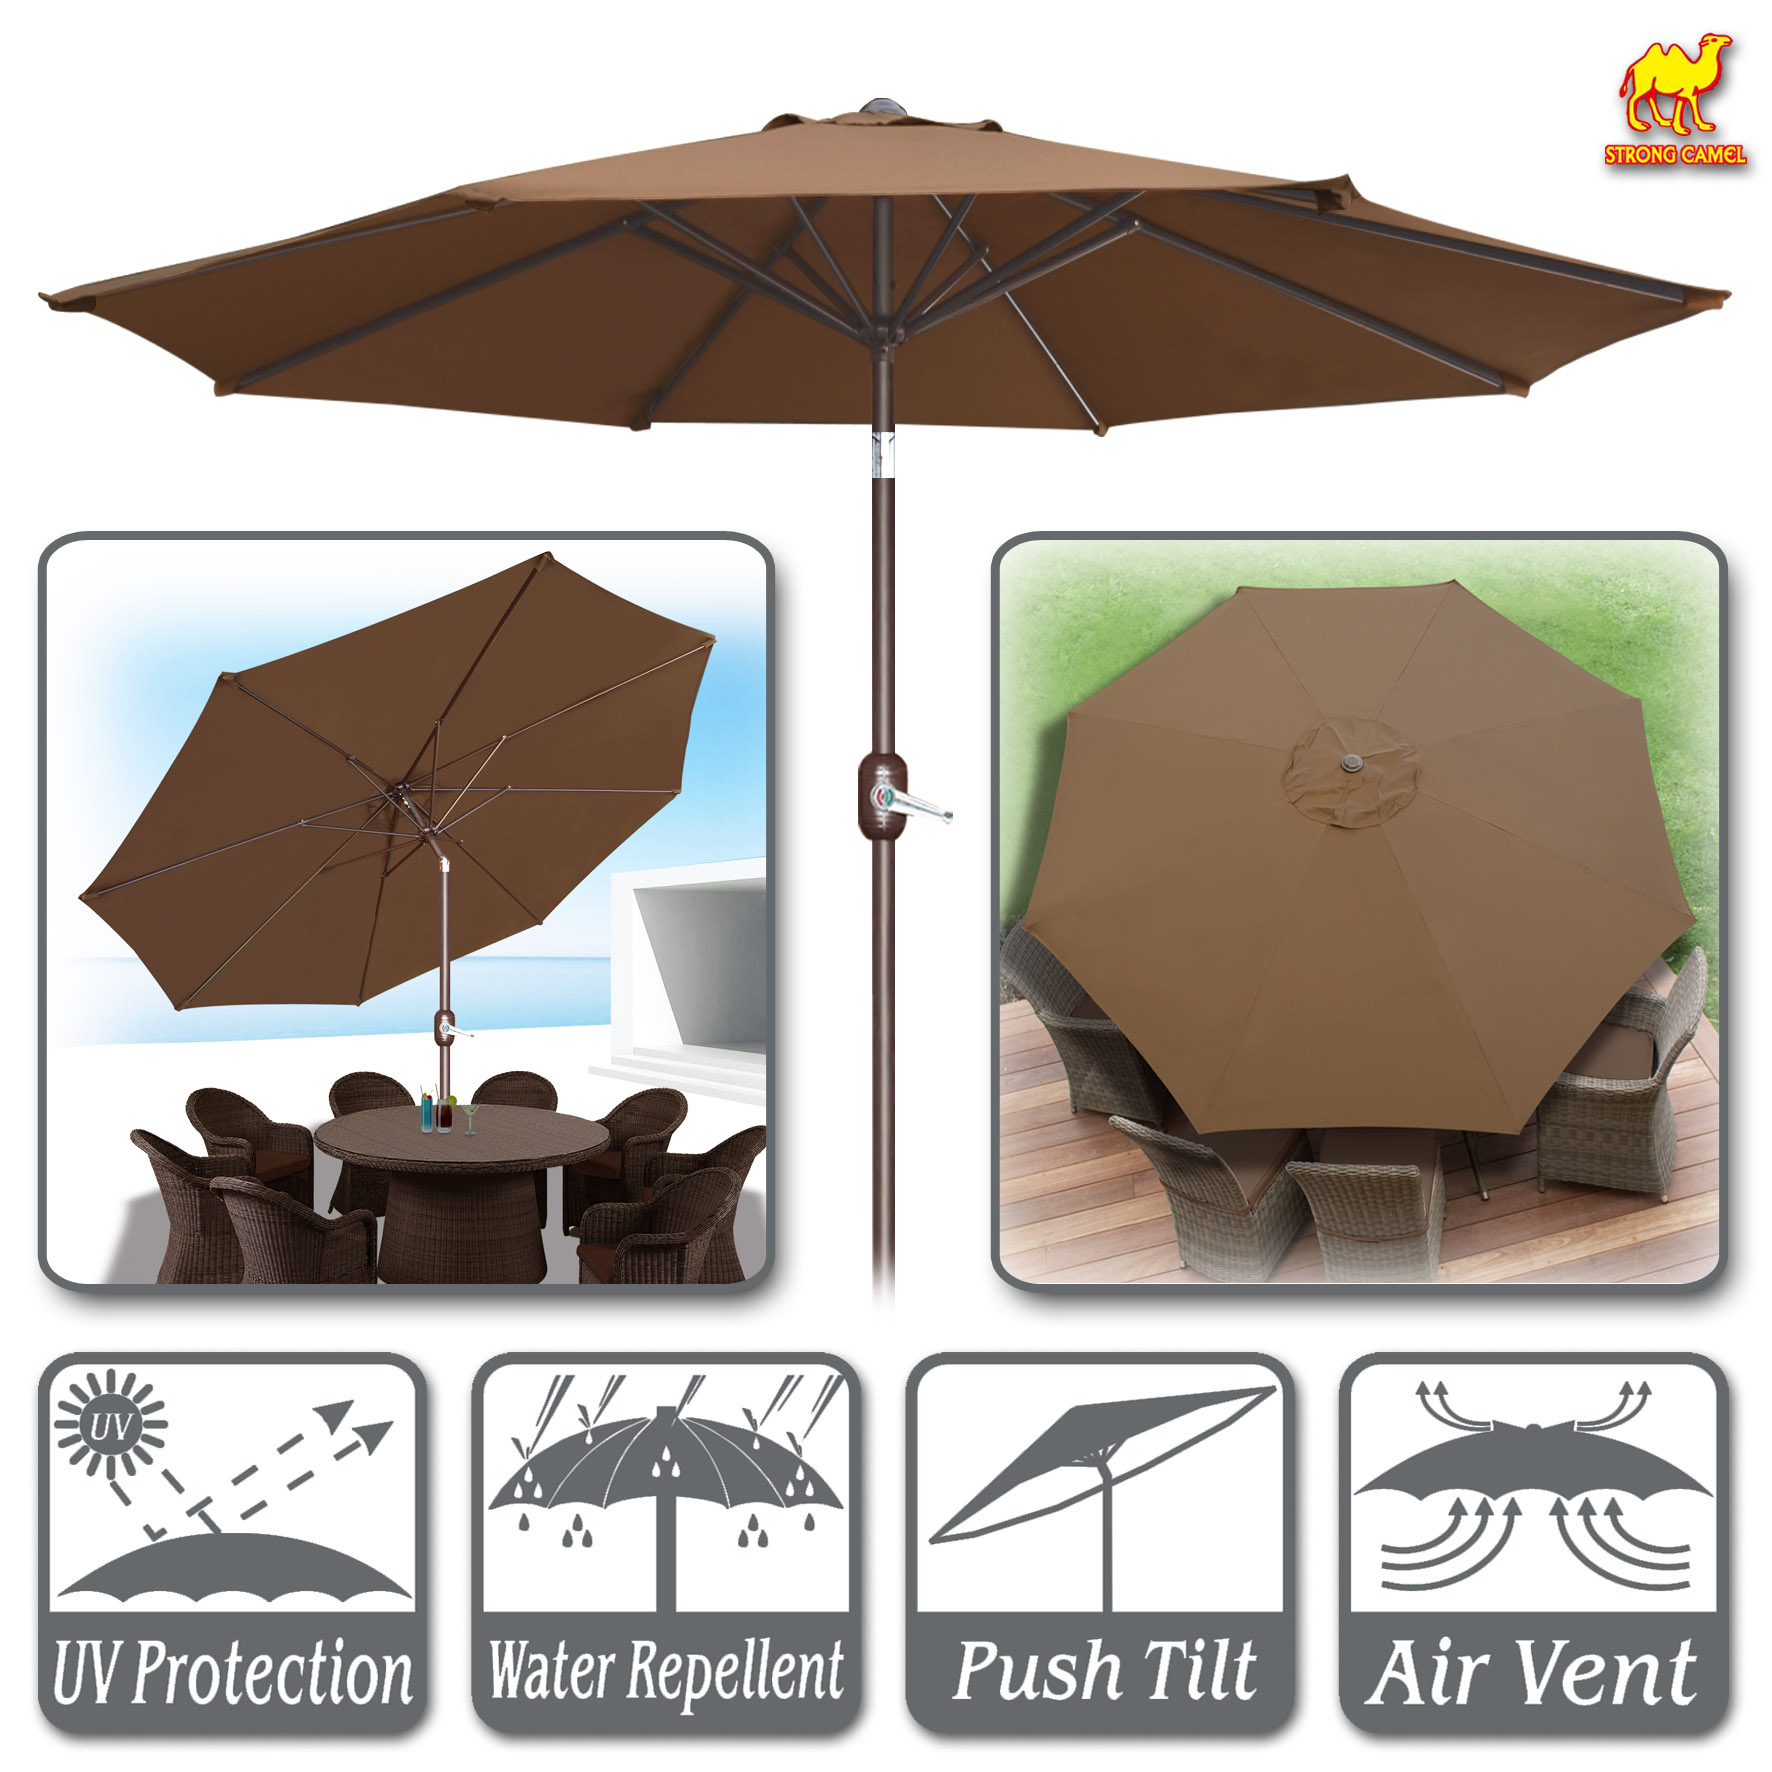 Strong Camel 10' Round Patio Umbrella Outdoor Market Umbrella with Tilt & Crank Sunshade... by Sunny Outdoor Inc